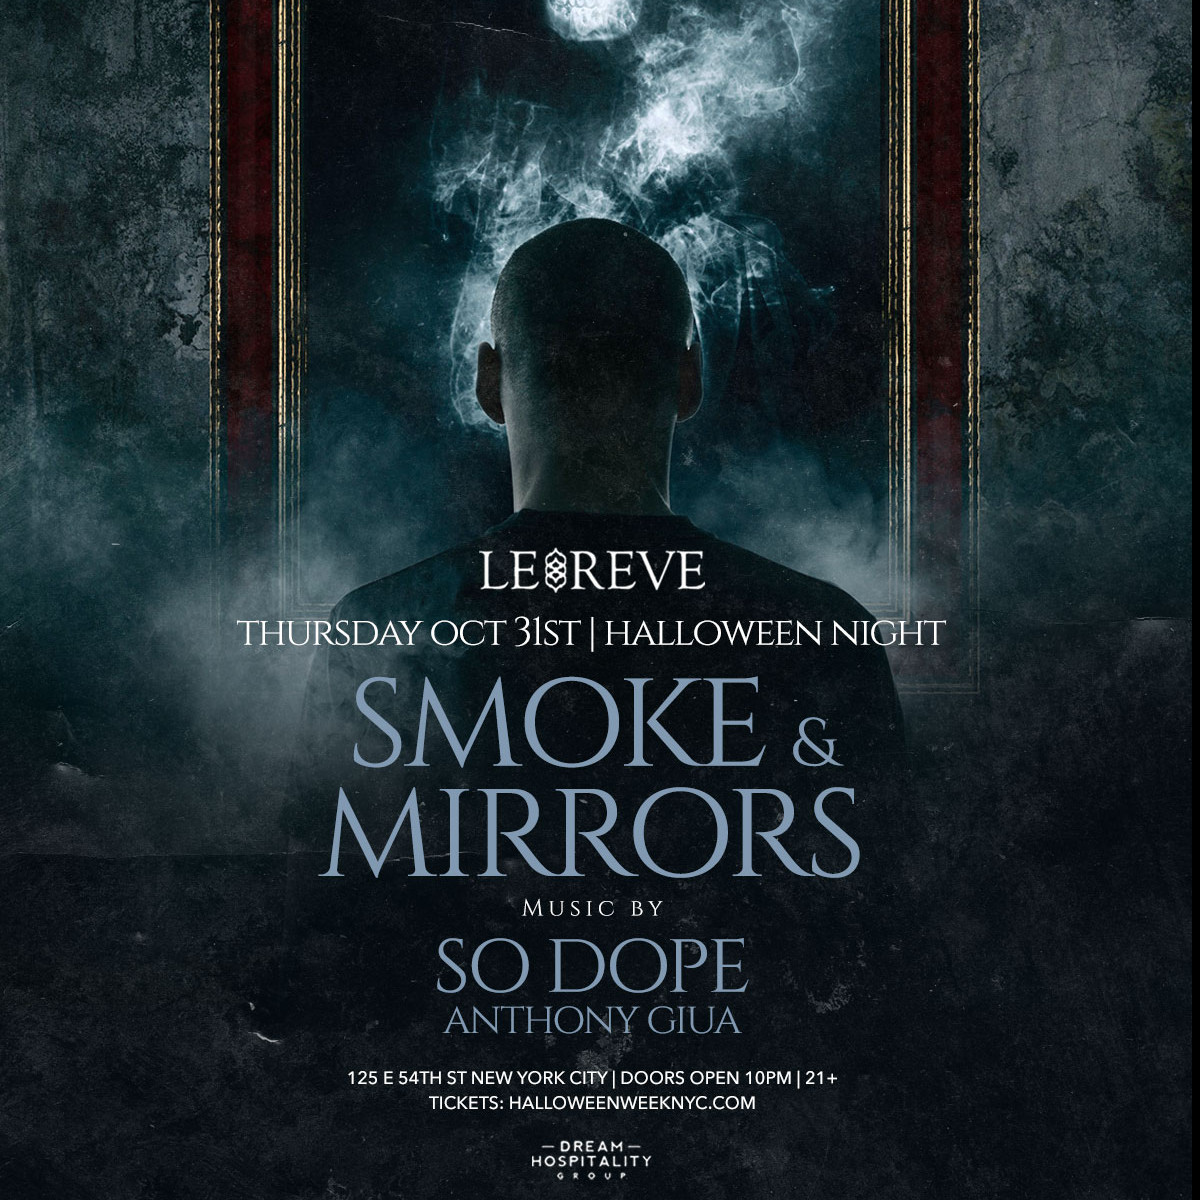 """""""Smoke & Mirrors"""" Halloween Party at Le Reve Club - Thursday, Oct 31, 2019"""